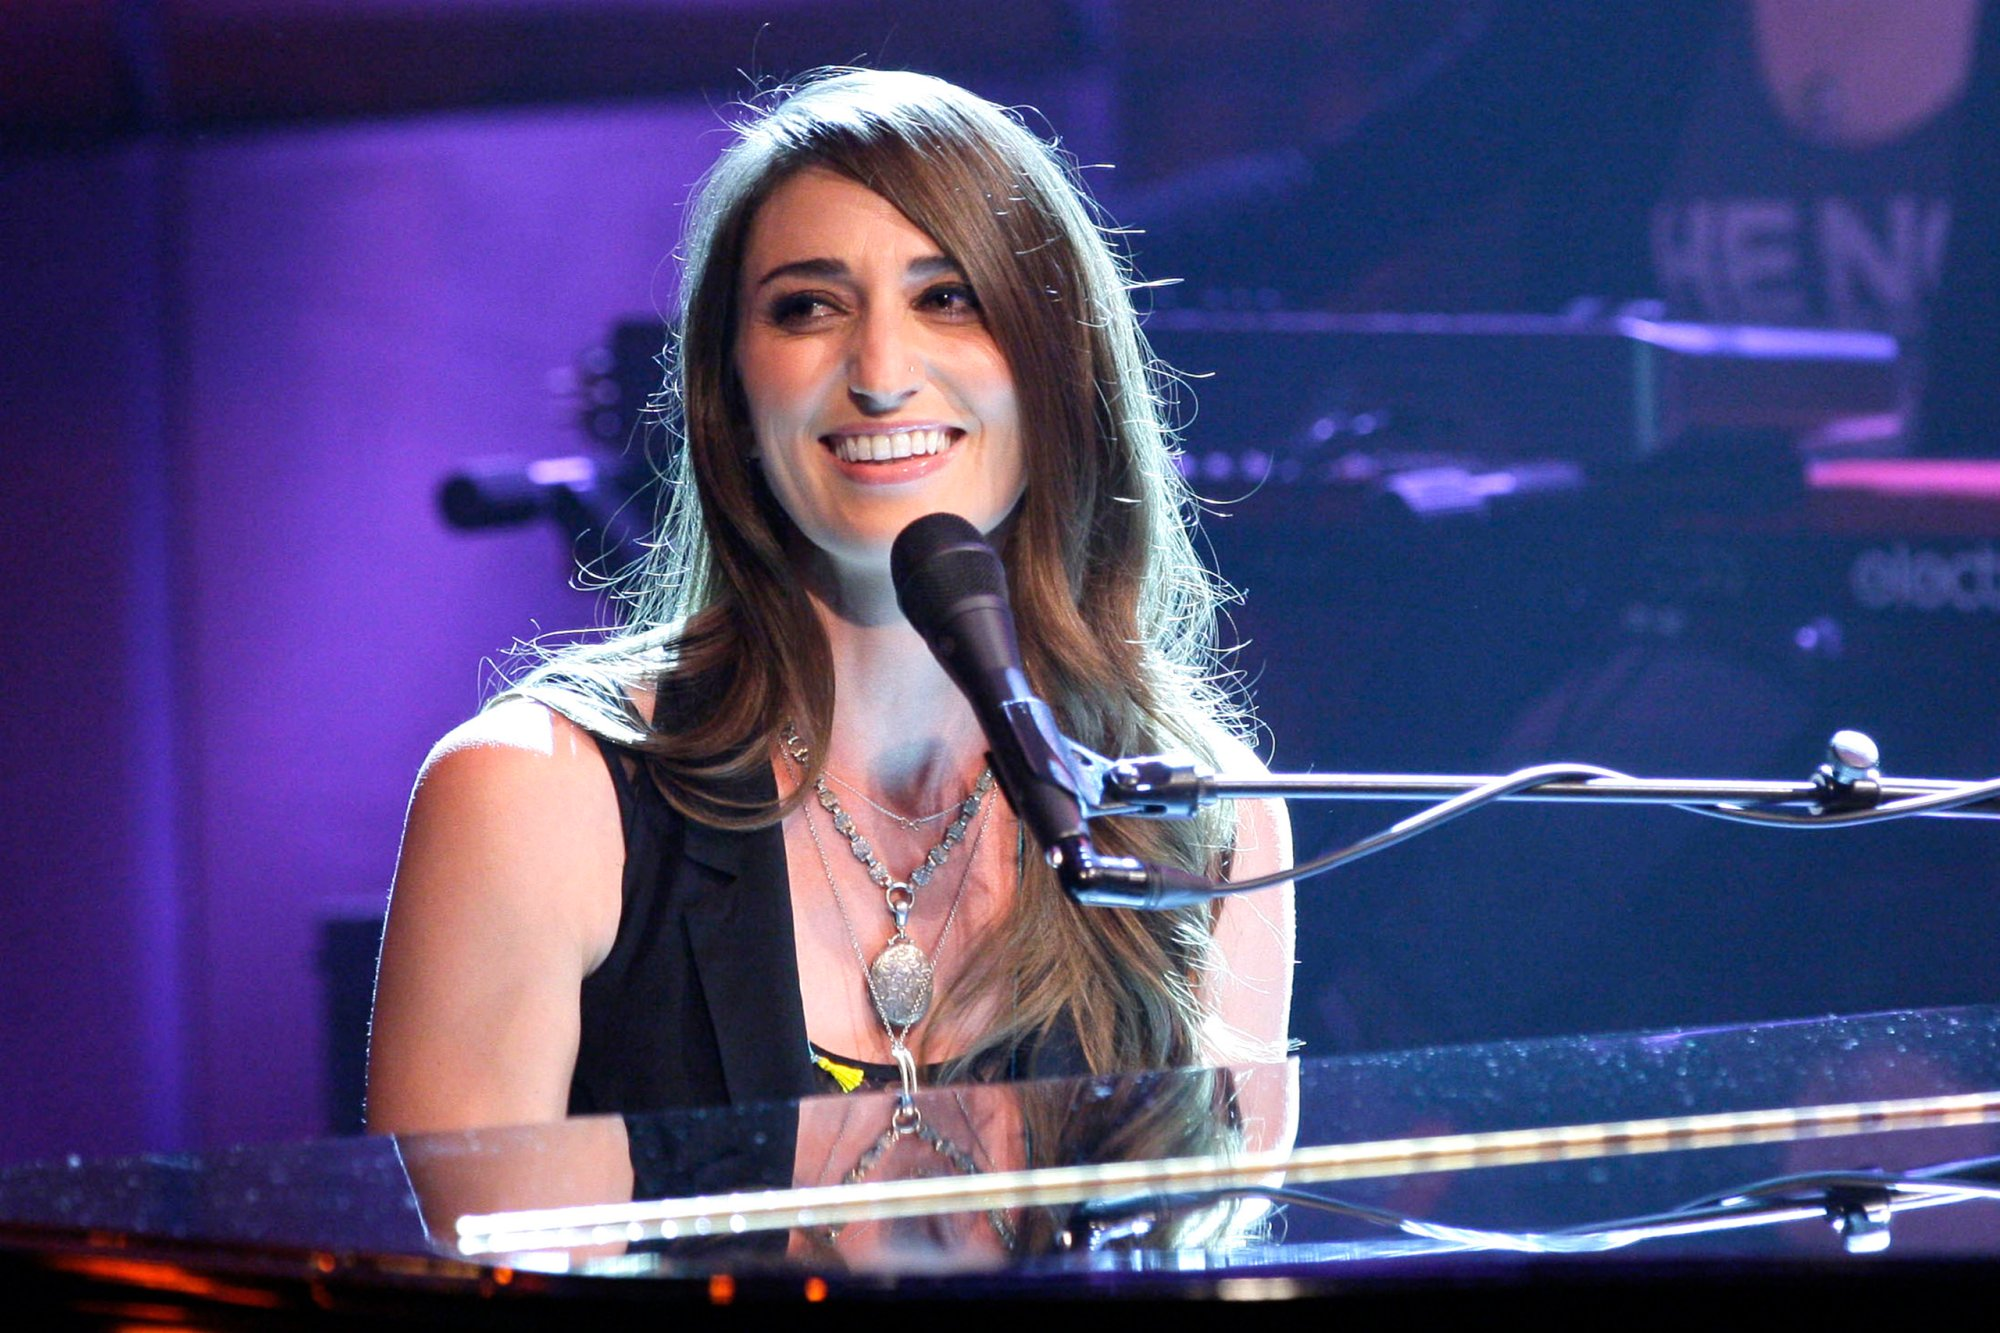 Sara Bareilles Widescreen for desktop